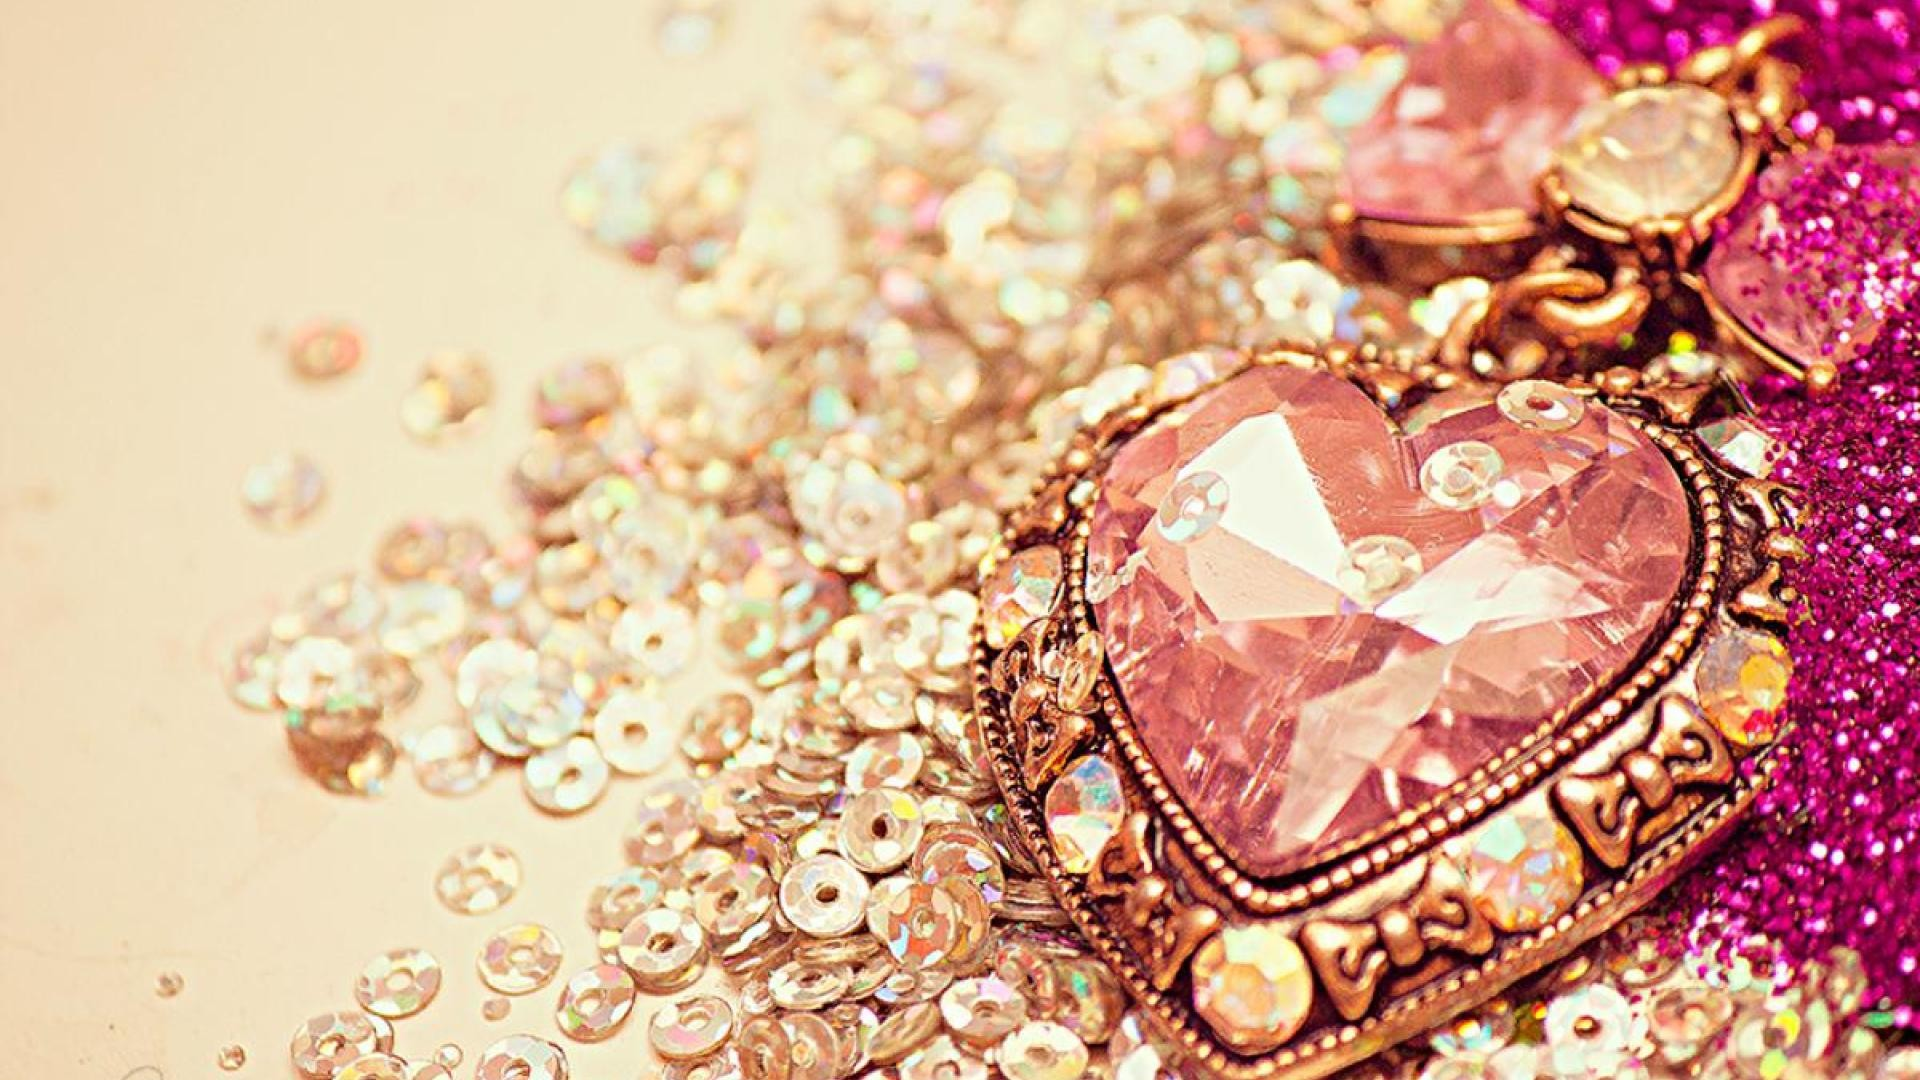 Res: 1920x1080, DAINTY HEART WALLPAPER - (#139851) - HD Wallpapers .